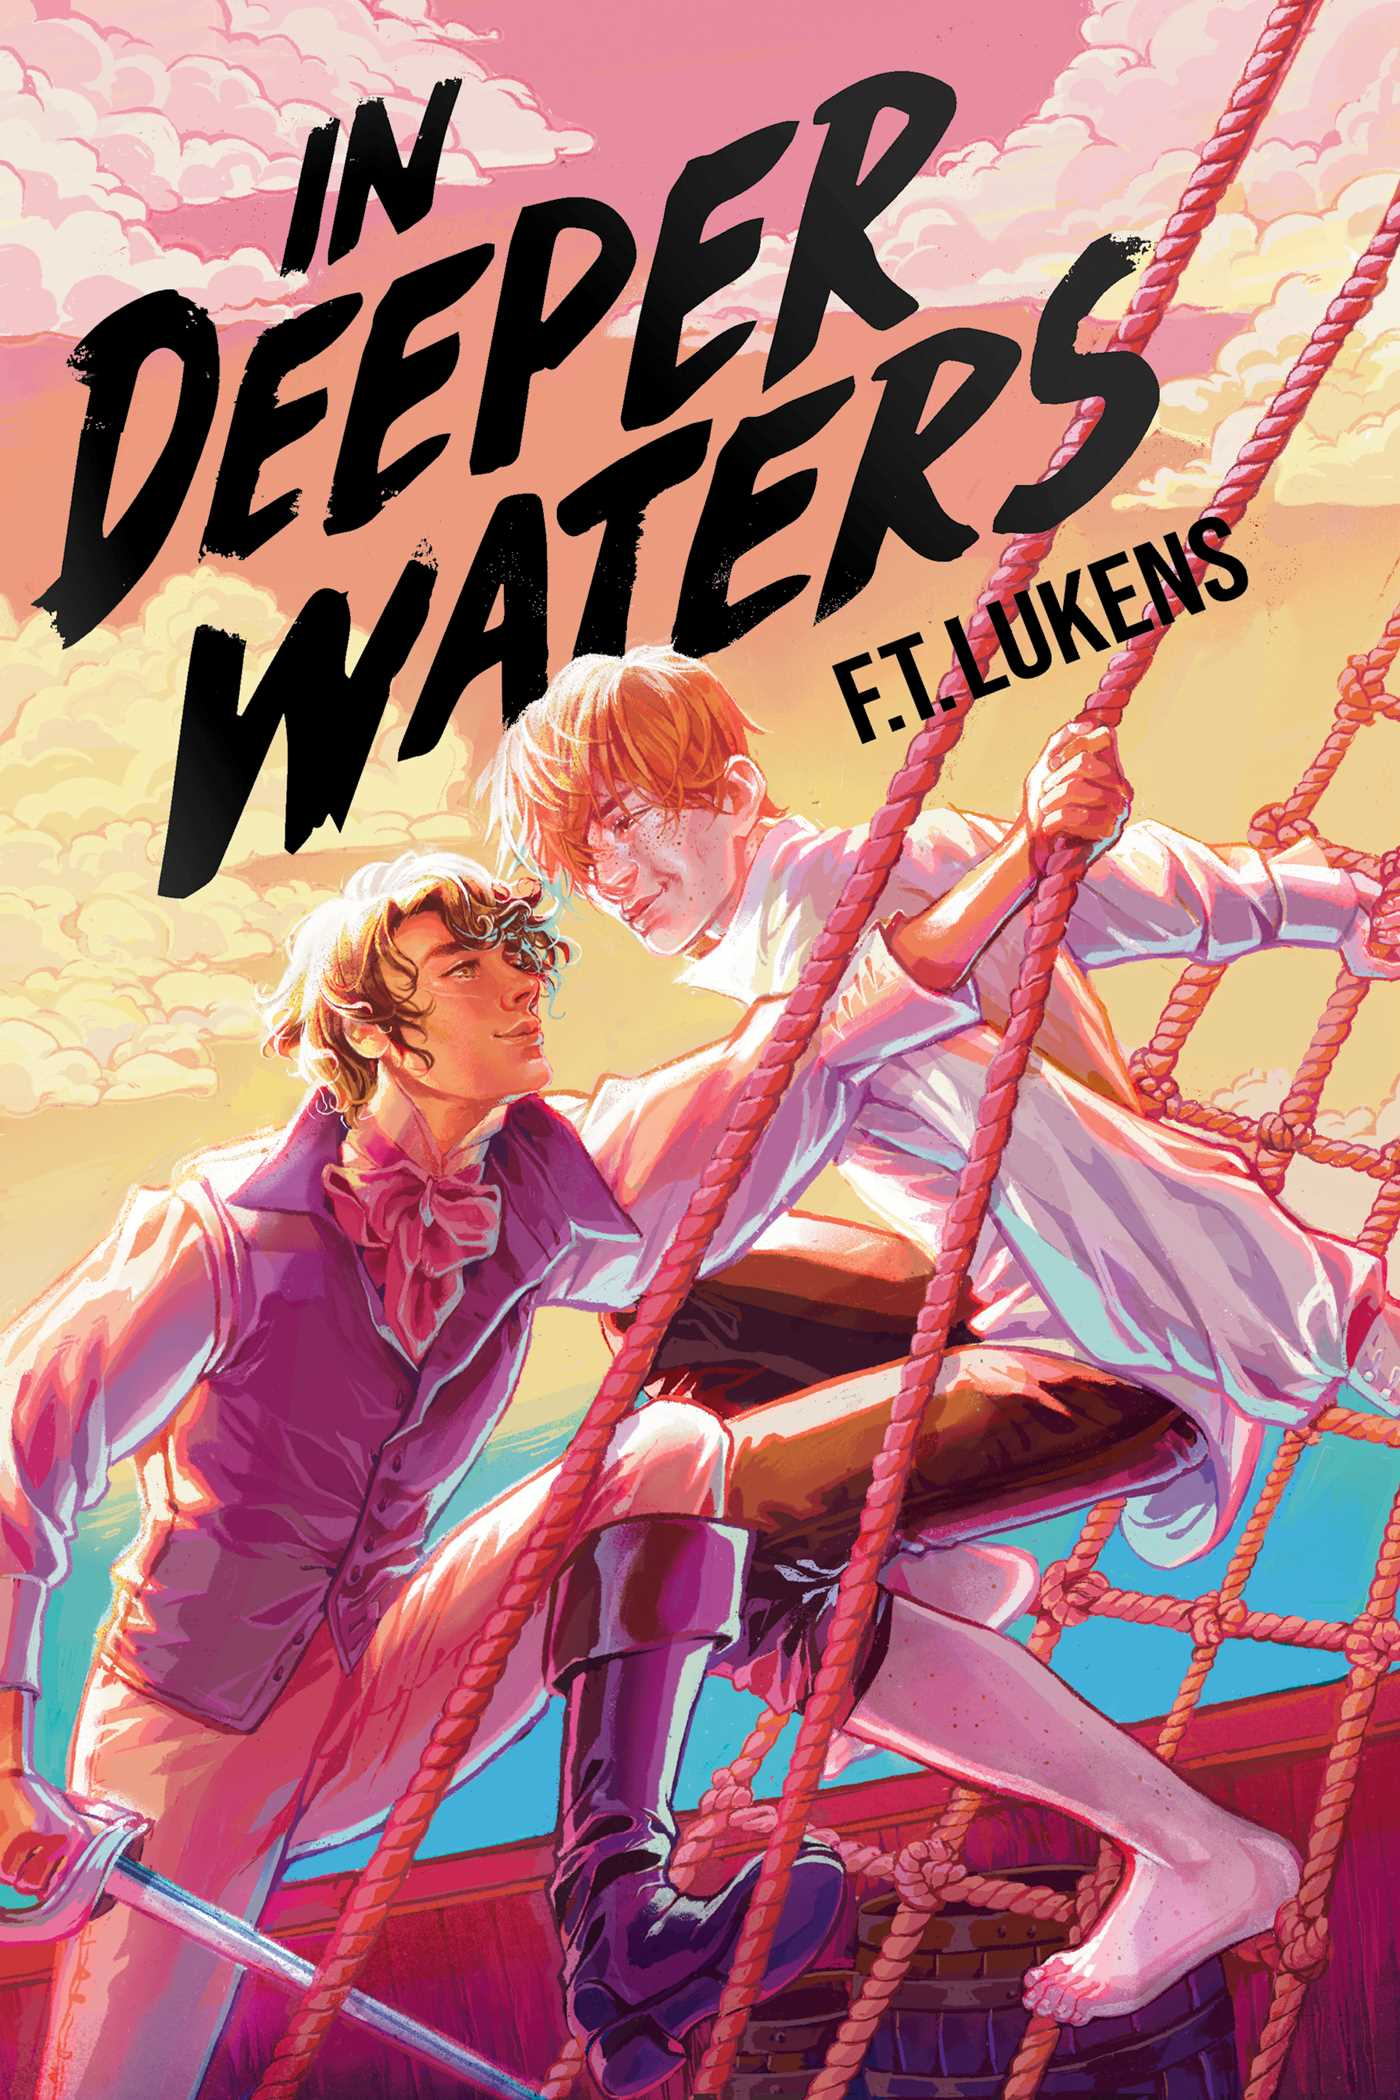 In Deeper Waters | Book by F.T. Lukens | Official Publisher Page | Simon &  Schuster